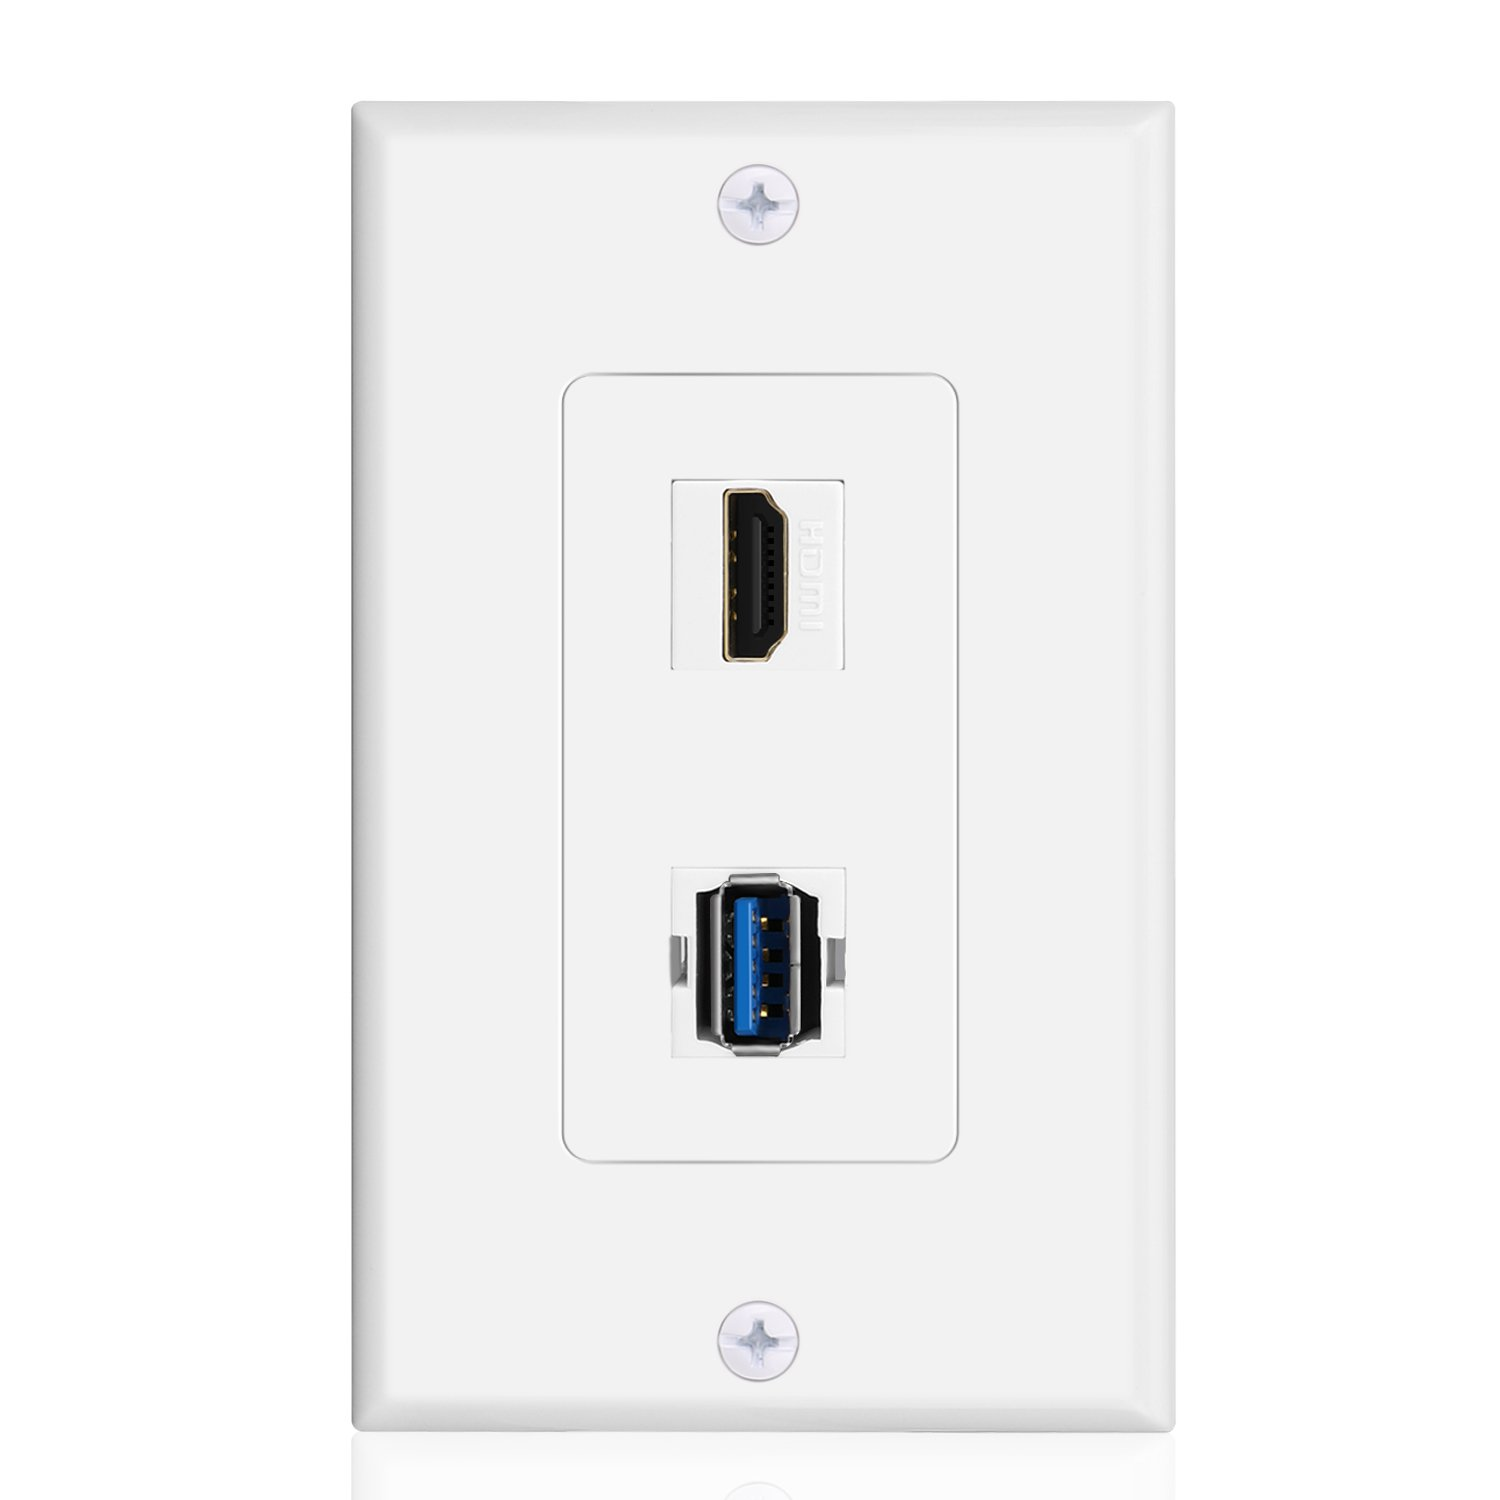 Buy Tnp Usb Hdmi Outlet Wall Plate